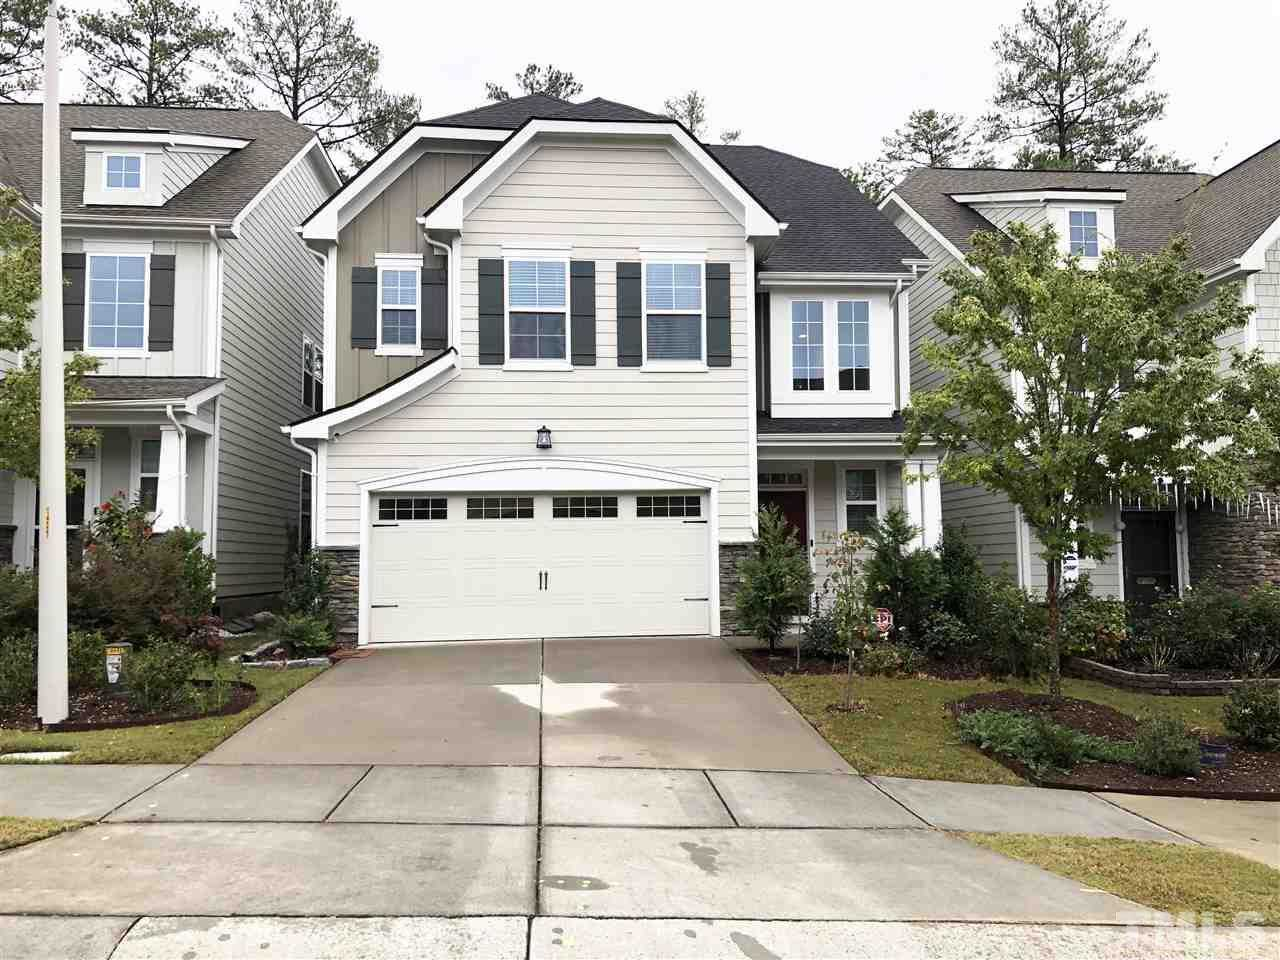 $2,180 - 4Br/3Ba -  for Sale in Birkshires At Townhall Commons, Morrisville